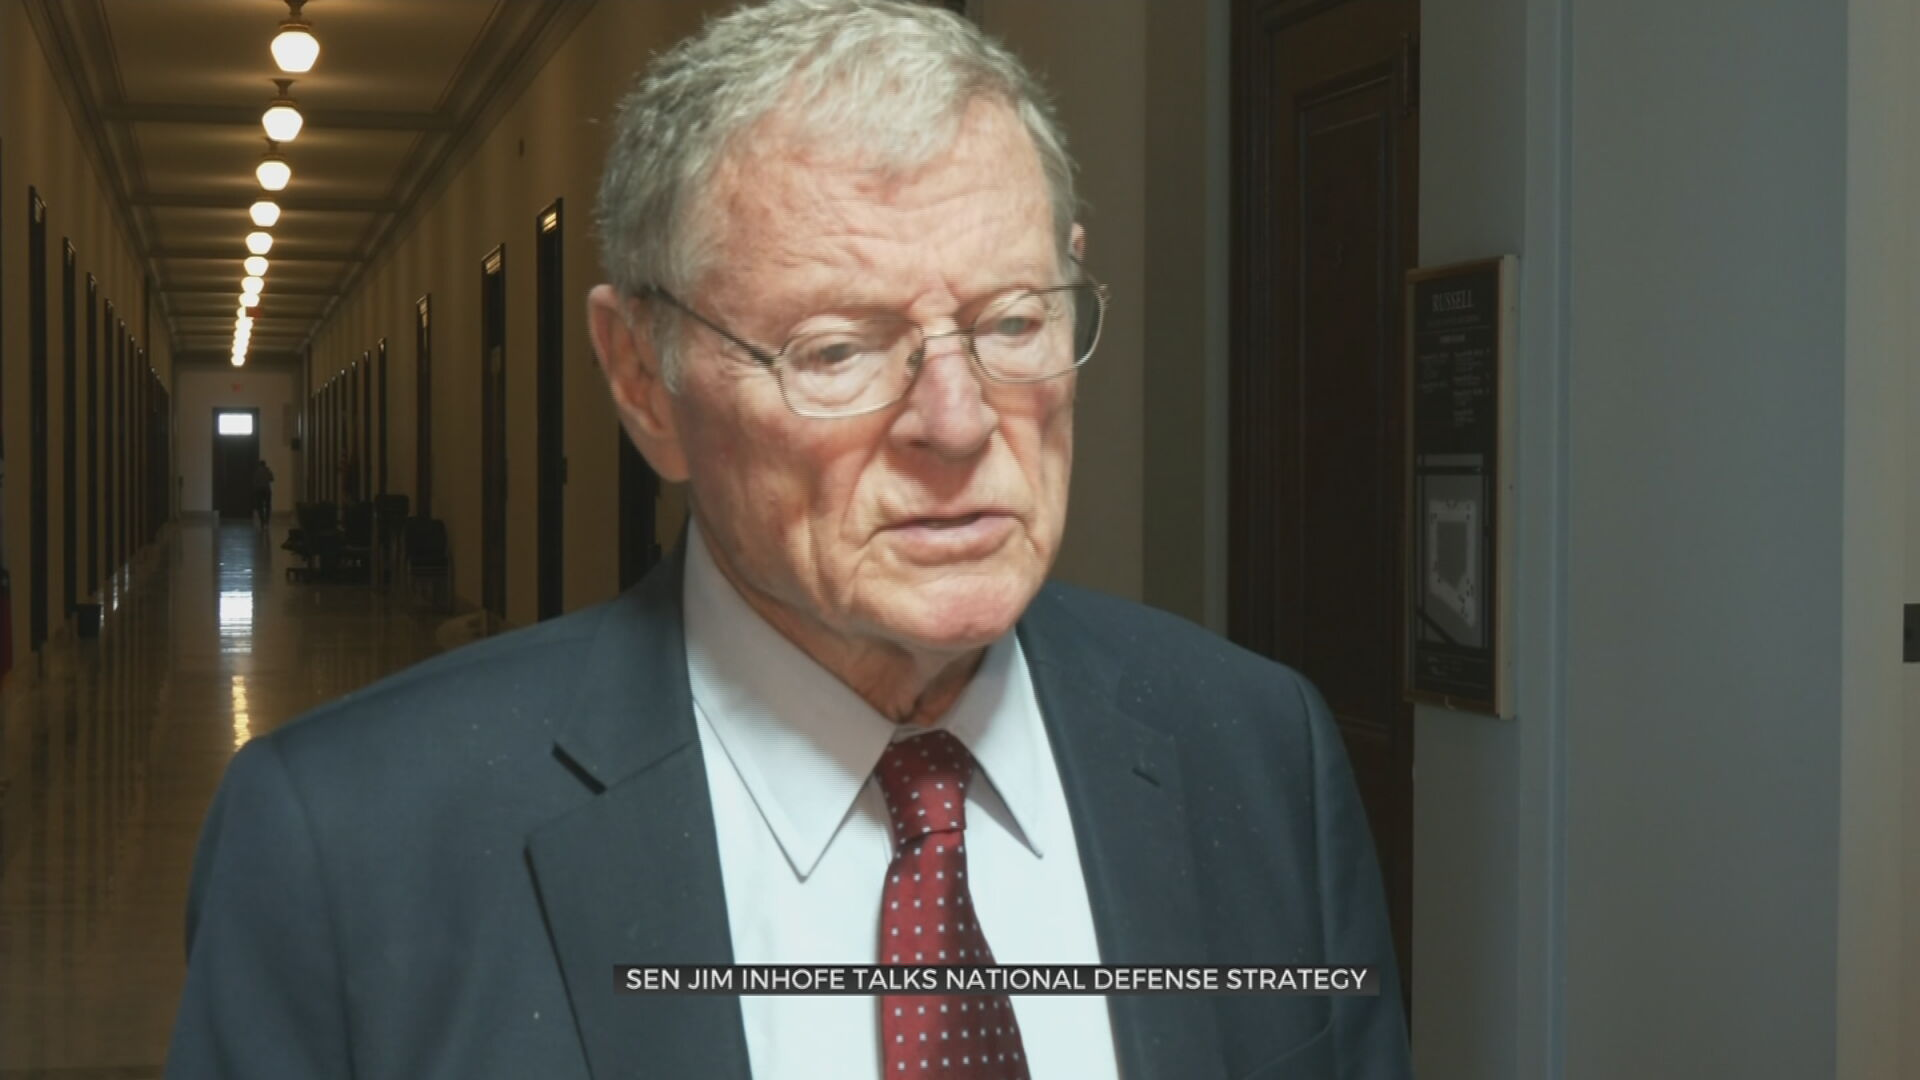 Sen. Inhofe Urges Policy Continuity For National Defense Strategy